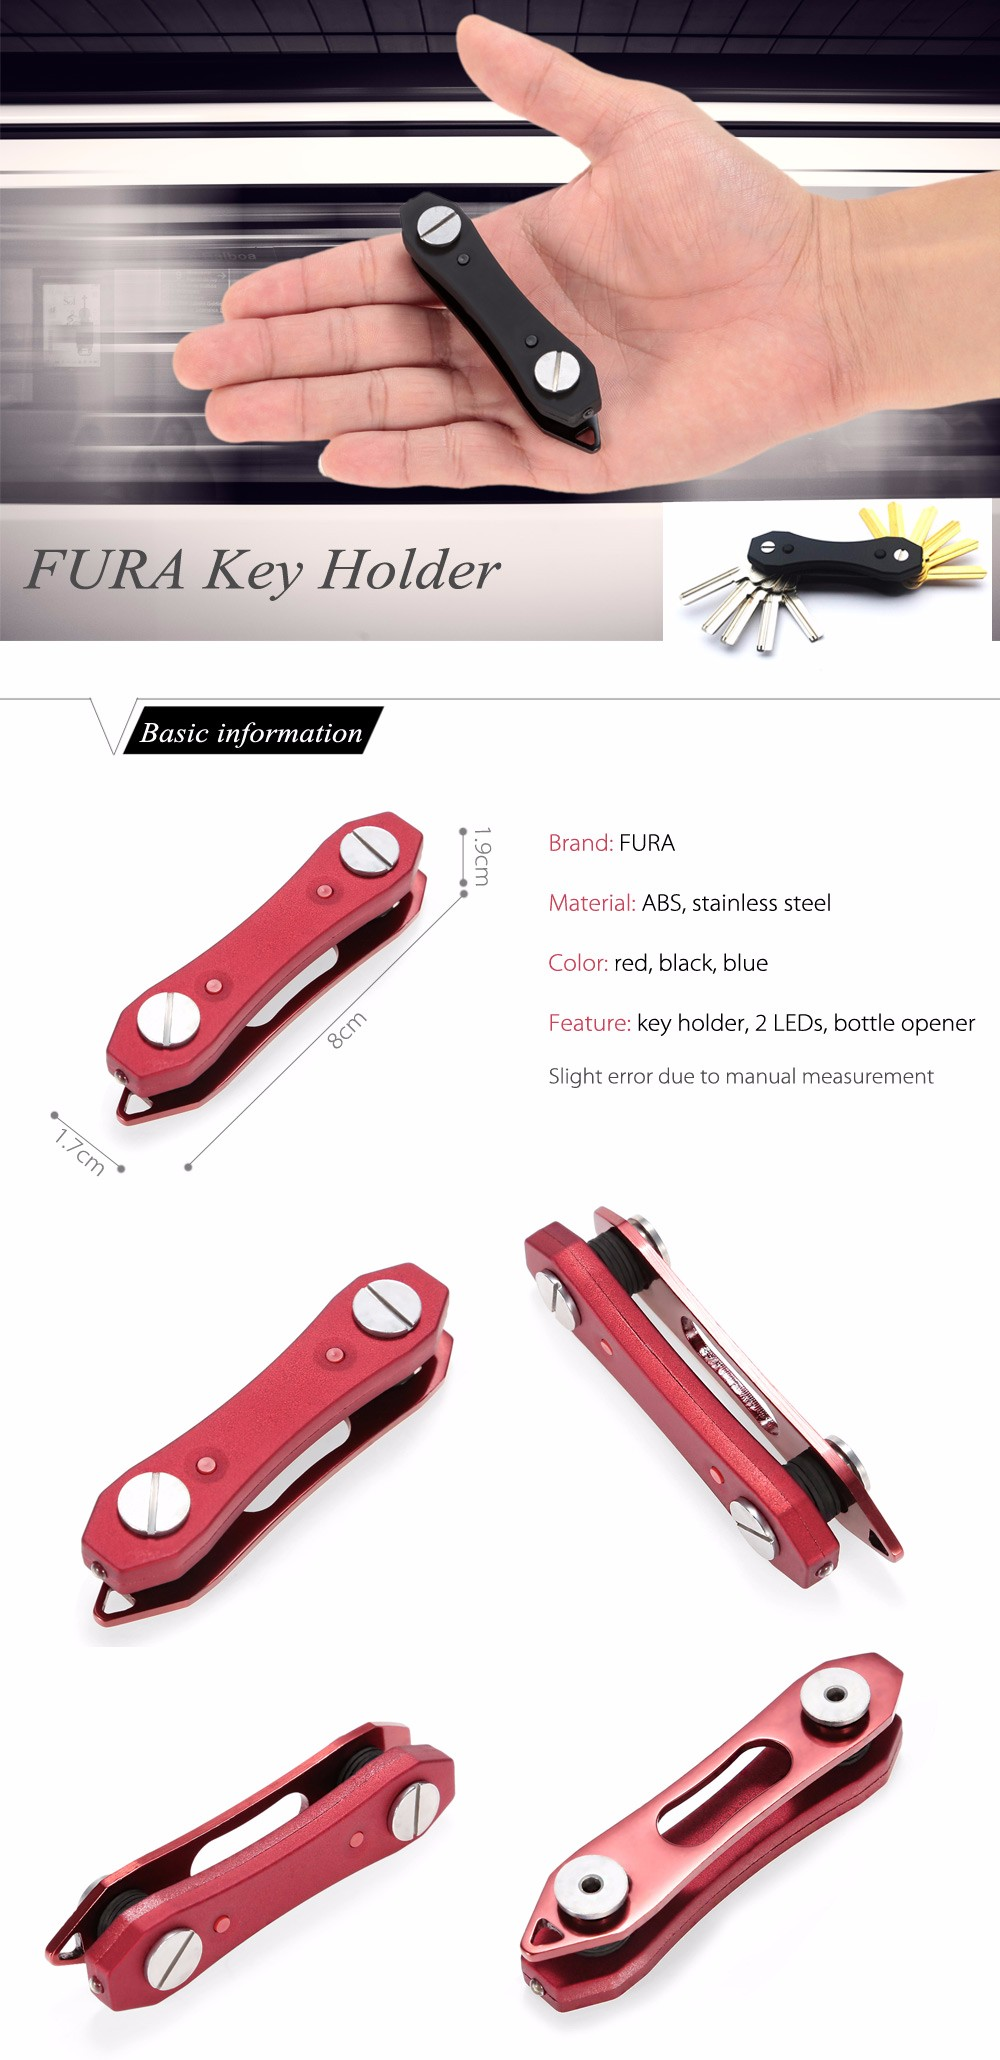 FURA ABS + Stainless Steel Key Holder with 2 LED Lights